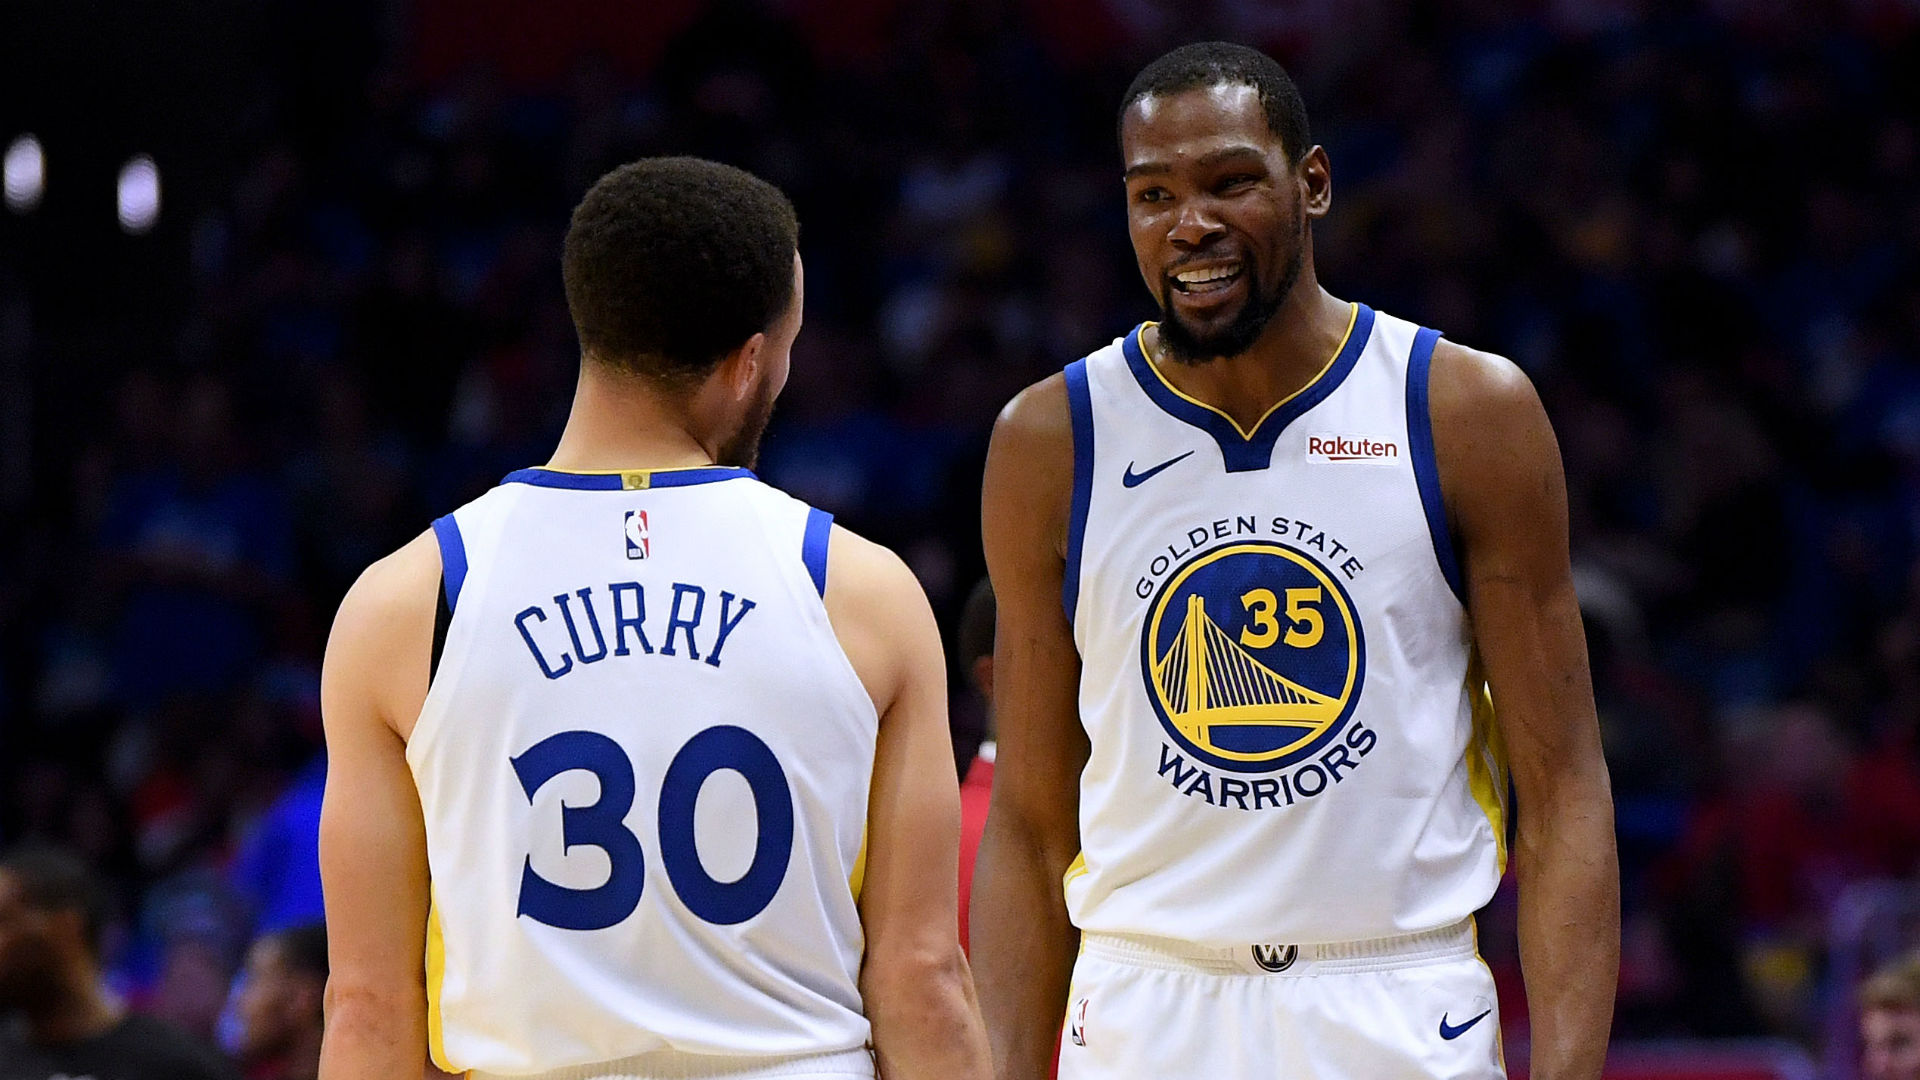 Warriors' Stephen Curry will visit Kevin Durant in New York before free agency begins, report says